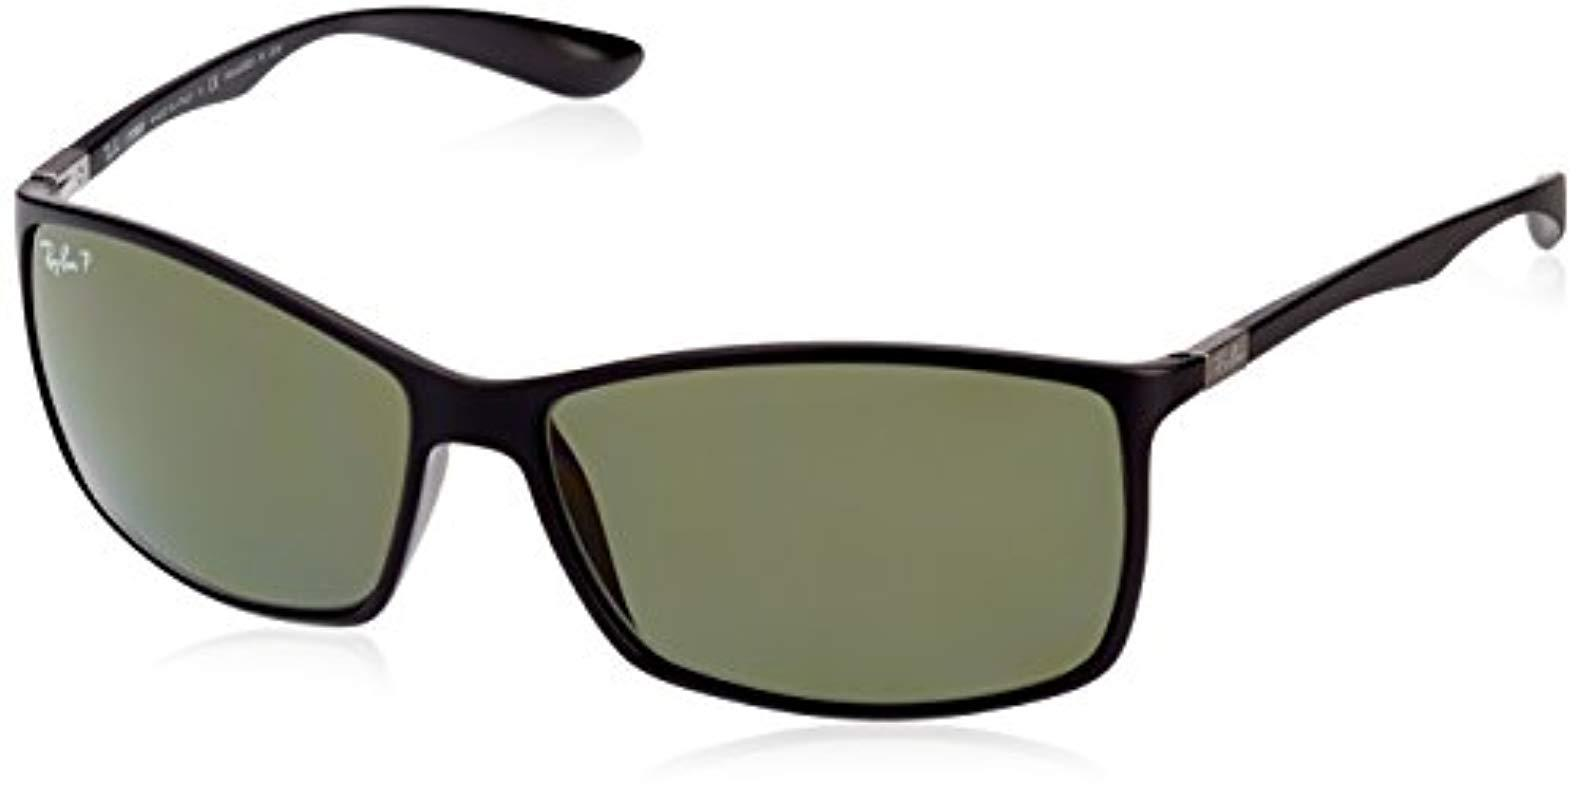 15aef07e07f Lyst - Ray-Ban Liteforce Tech Rb4179 Sunglasses in Black for Men ...